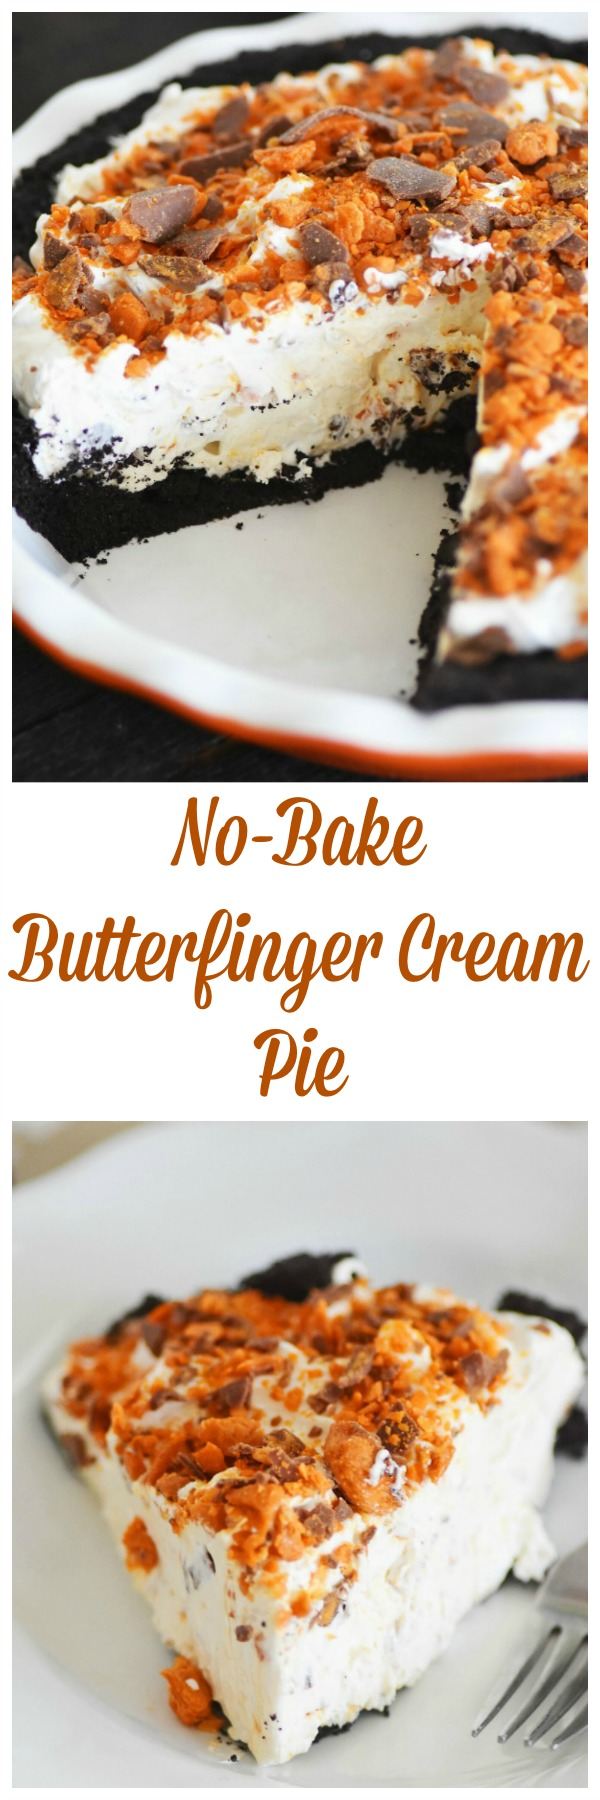 no-bake-butterfinger-cream-pie